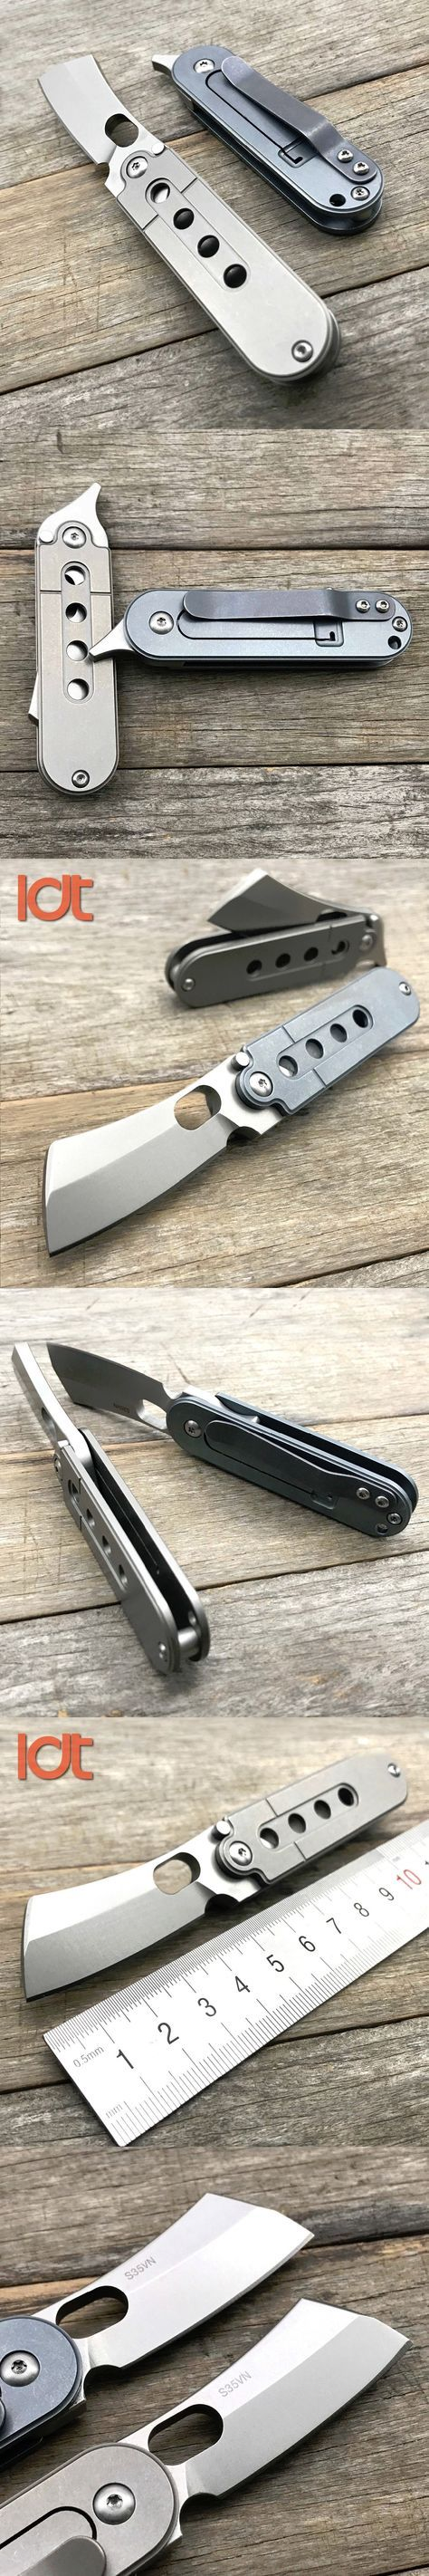 LDT Titanium Handle Bean Butcher Folding Knives S35VN Blade Clever Survival Pocket Knife Ball Bearing Camping Knife Tools EDC